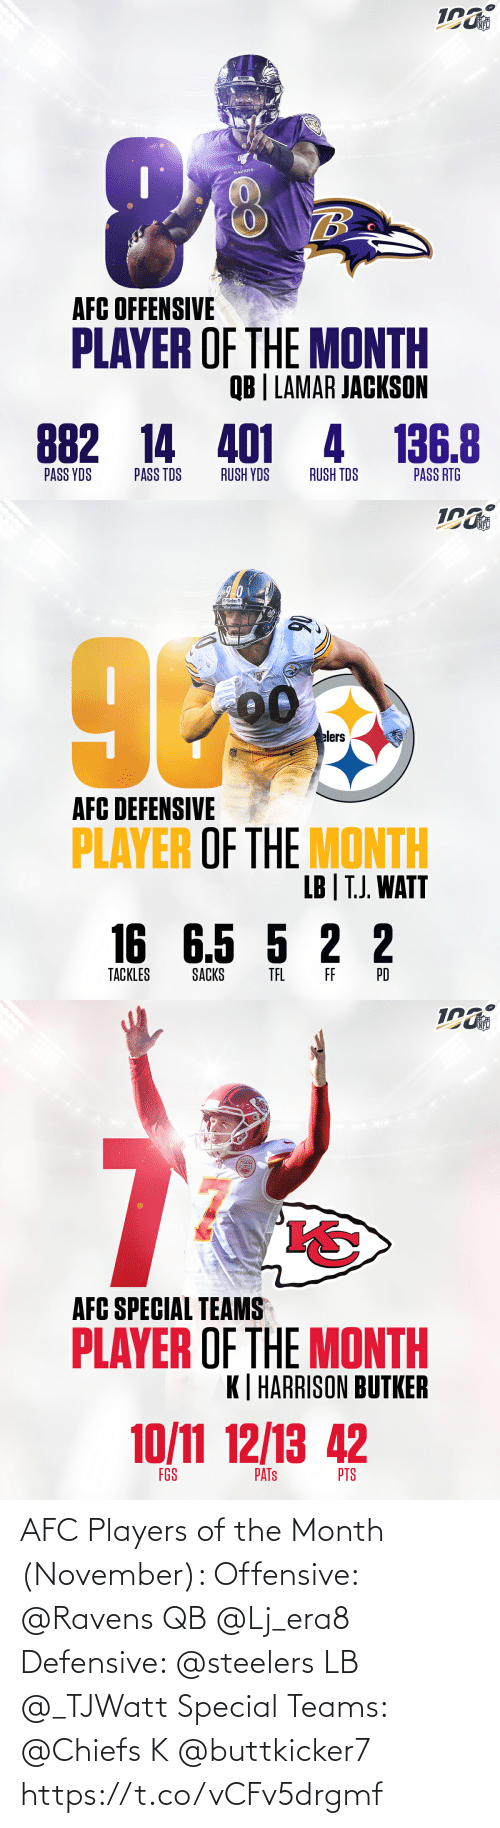 players: NFL  RAVENS  AFC OFFENSIVE  PLAYER OF THE MONTH  QB | LAMAR JACKSON  882 14 401 4 136.8  PASS YDS  PASS TDS  RUSH YDS  RUSH TDS  PASS RTG   NFL  elers  AFC DEFENSIVE  PLAYER OF THE MONTH  LB | T.J. WATT  16 6.5 5 2 2  TACKLES  SACKS  TEL  FF  PD   NFL  AFC SPECIAL TEAMS  PLAYER OF THE MONTH  K| HARRISON BUTKER  10/11 12/13 42  FGS  PTS  PATS AFC Players of the Month (November):   Offensive: @Ravens QB @Lj_era8  Defensive: @steelers LB @_TJWatt  Special Teams: @Chiefs K @buttkicker7 https://t.co/vCFv5drgmf